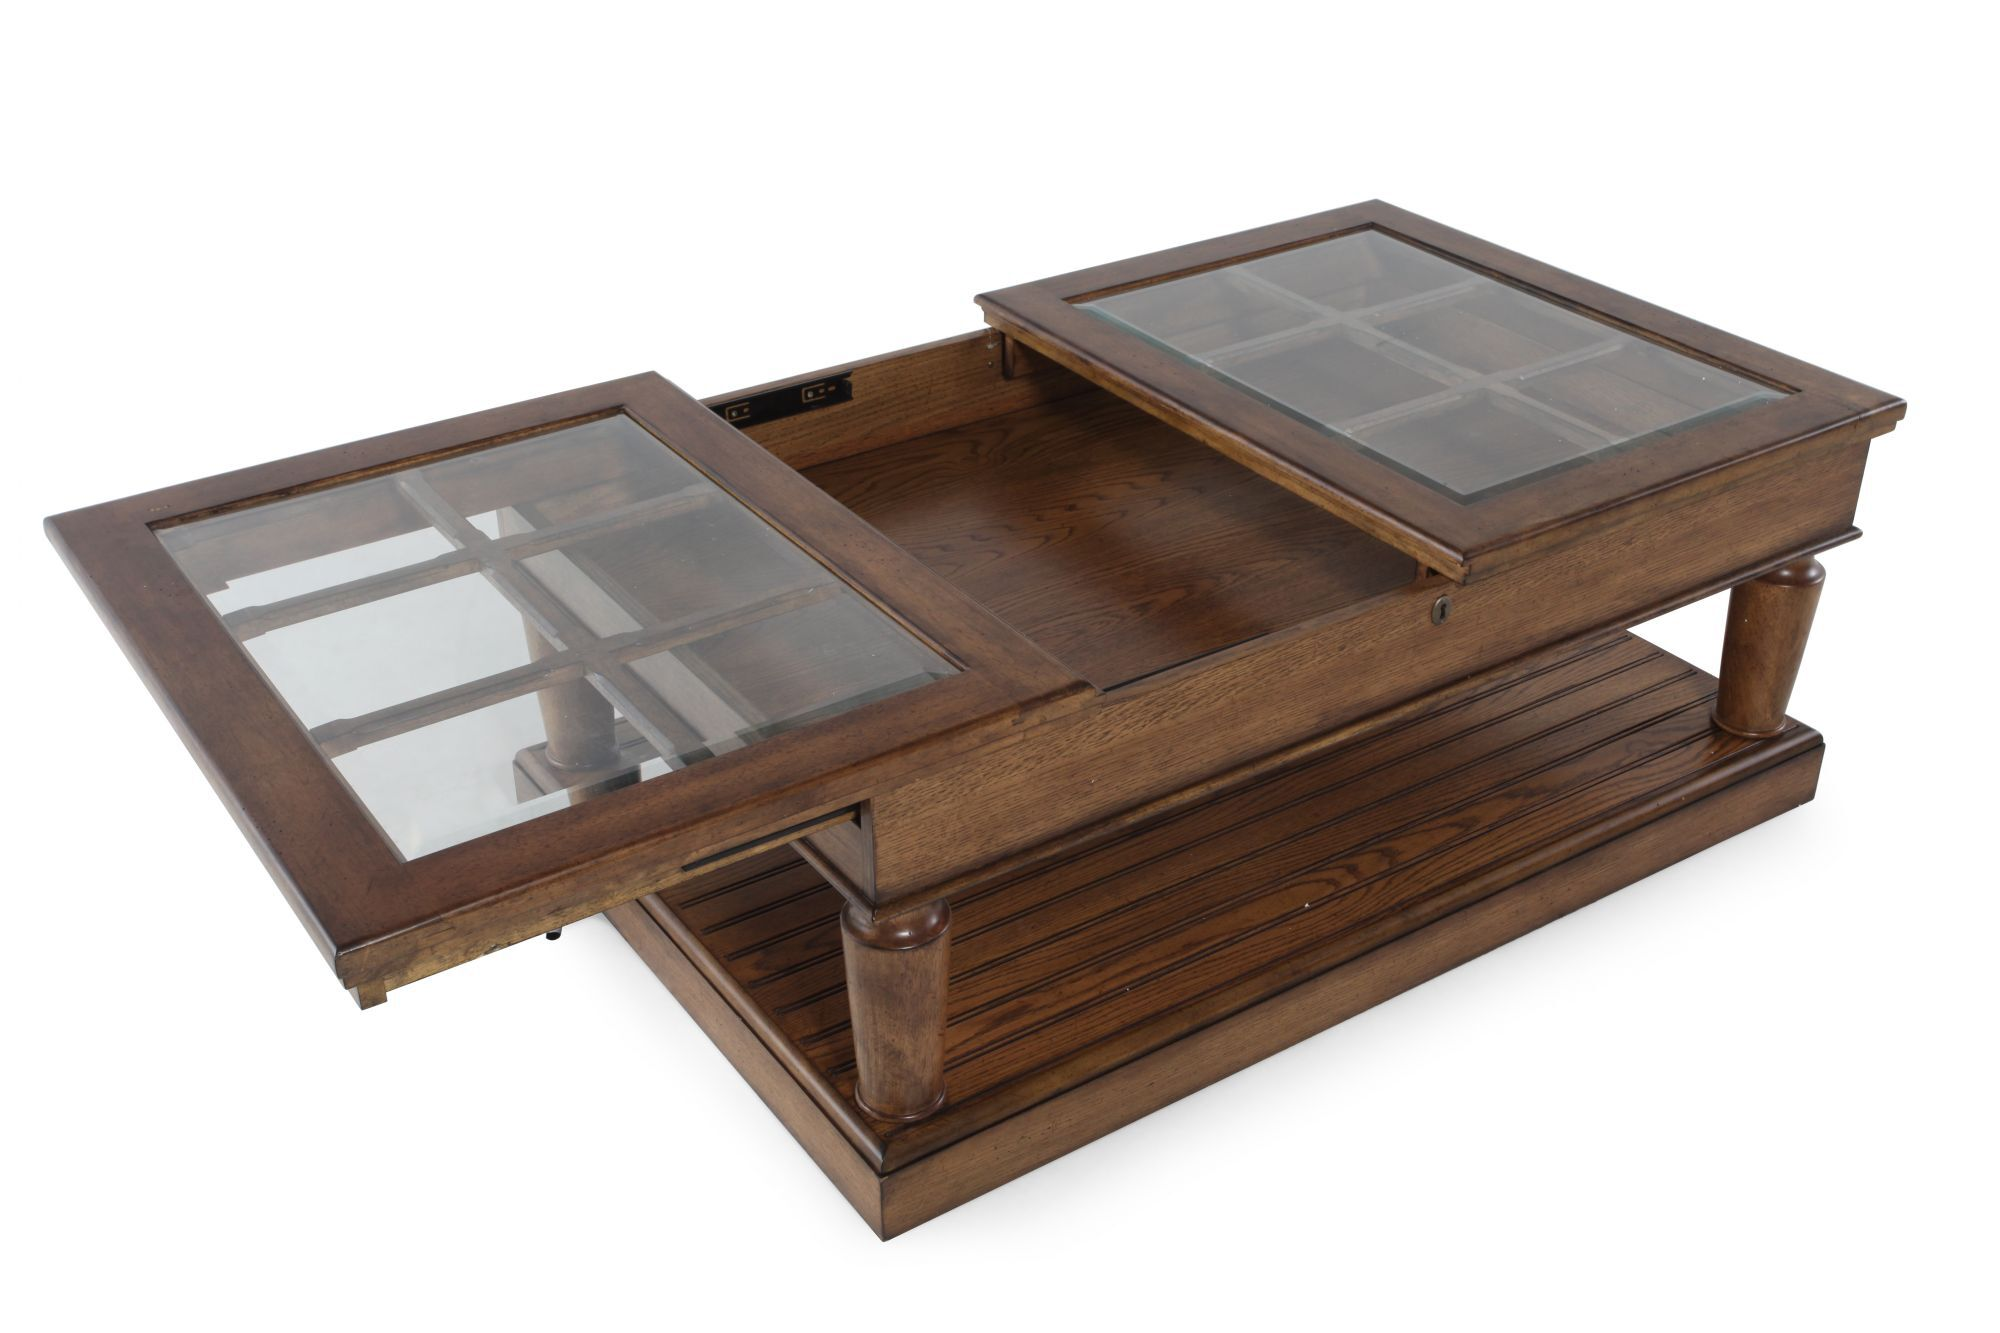 Window Pane Top Contemporary Coffee Table in Brown